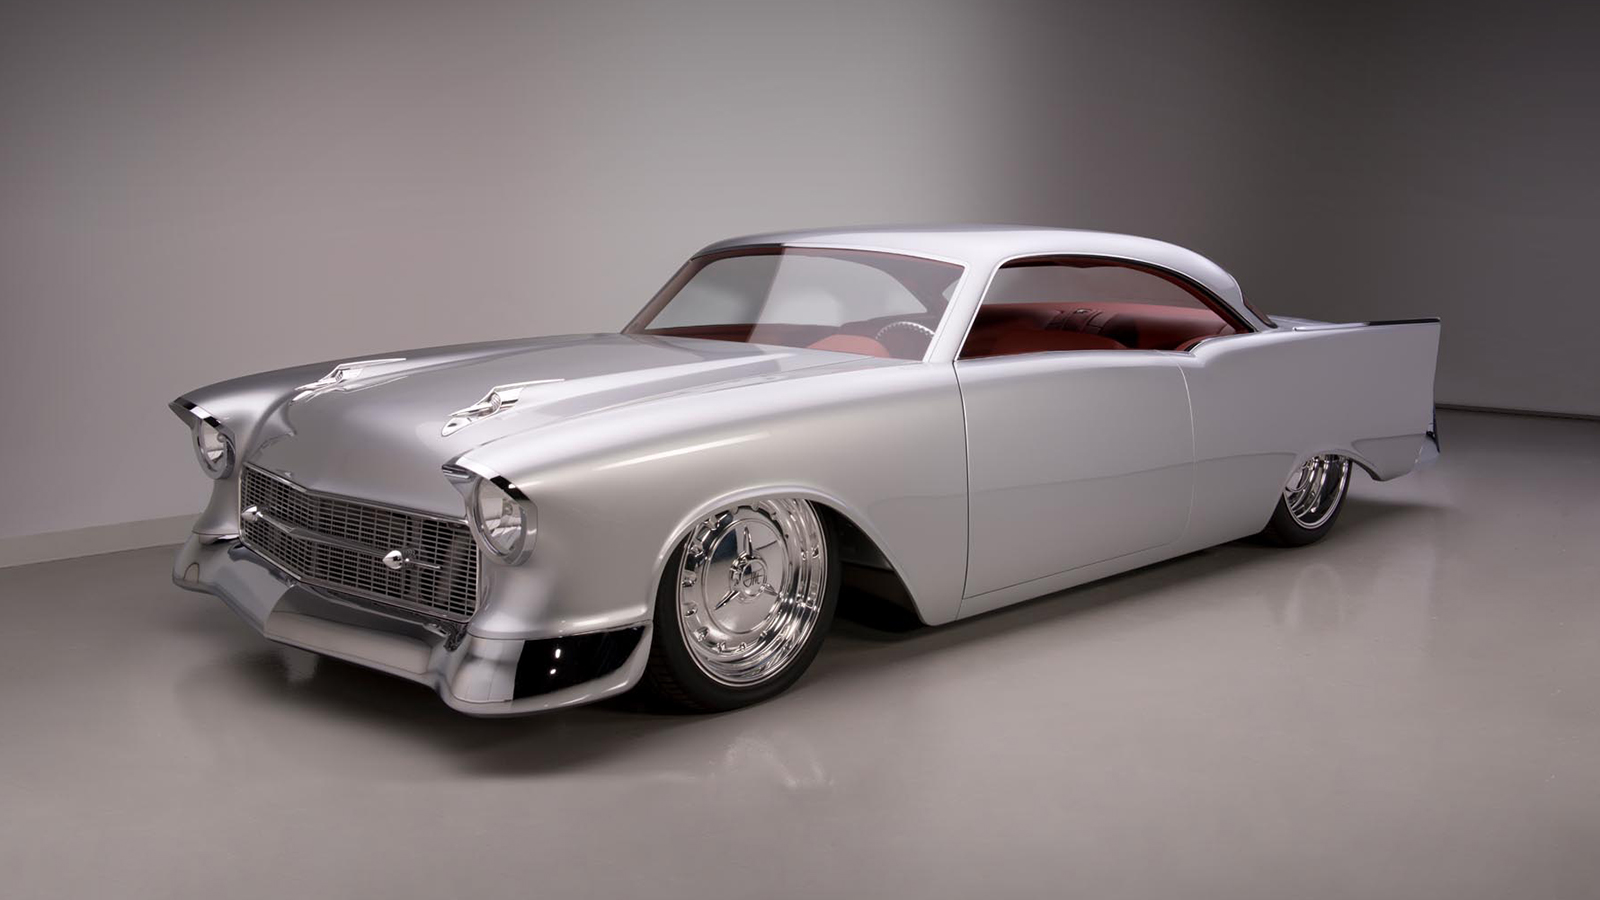 1957 Chevrolet Custom 'Imagine' Hardtop